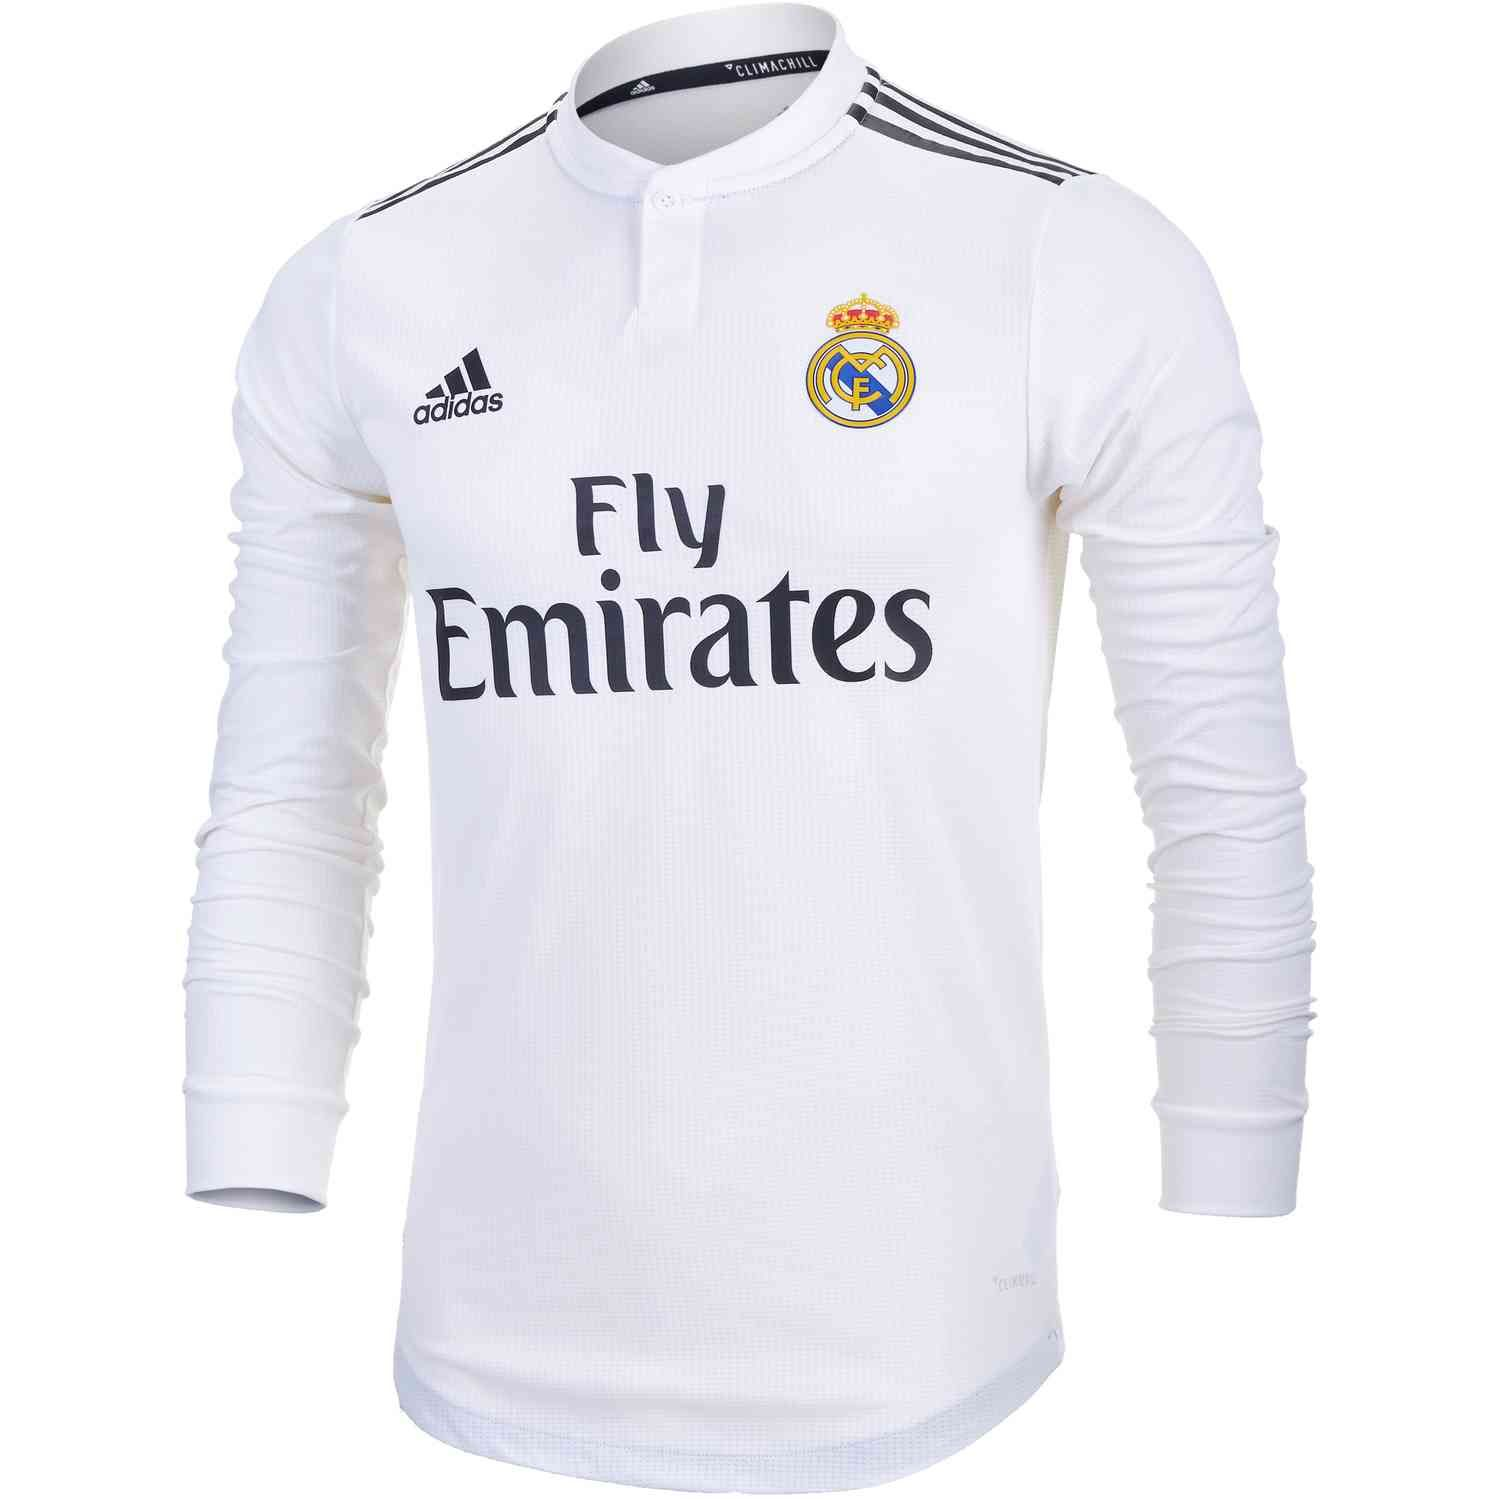 Buy the Kids adidas Real Madrid long sleeve home jersey from  www.soccerpro.com 43193721ccc0e